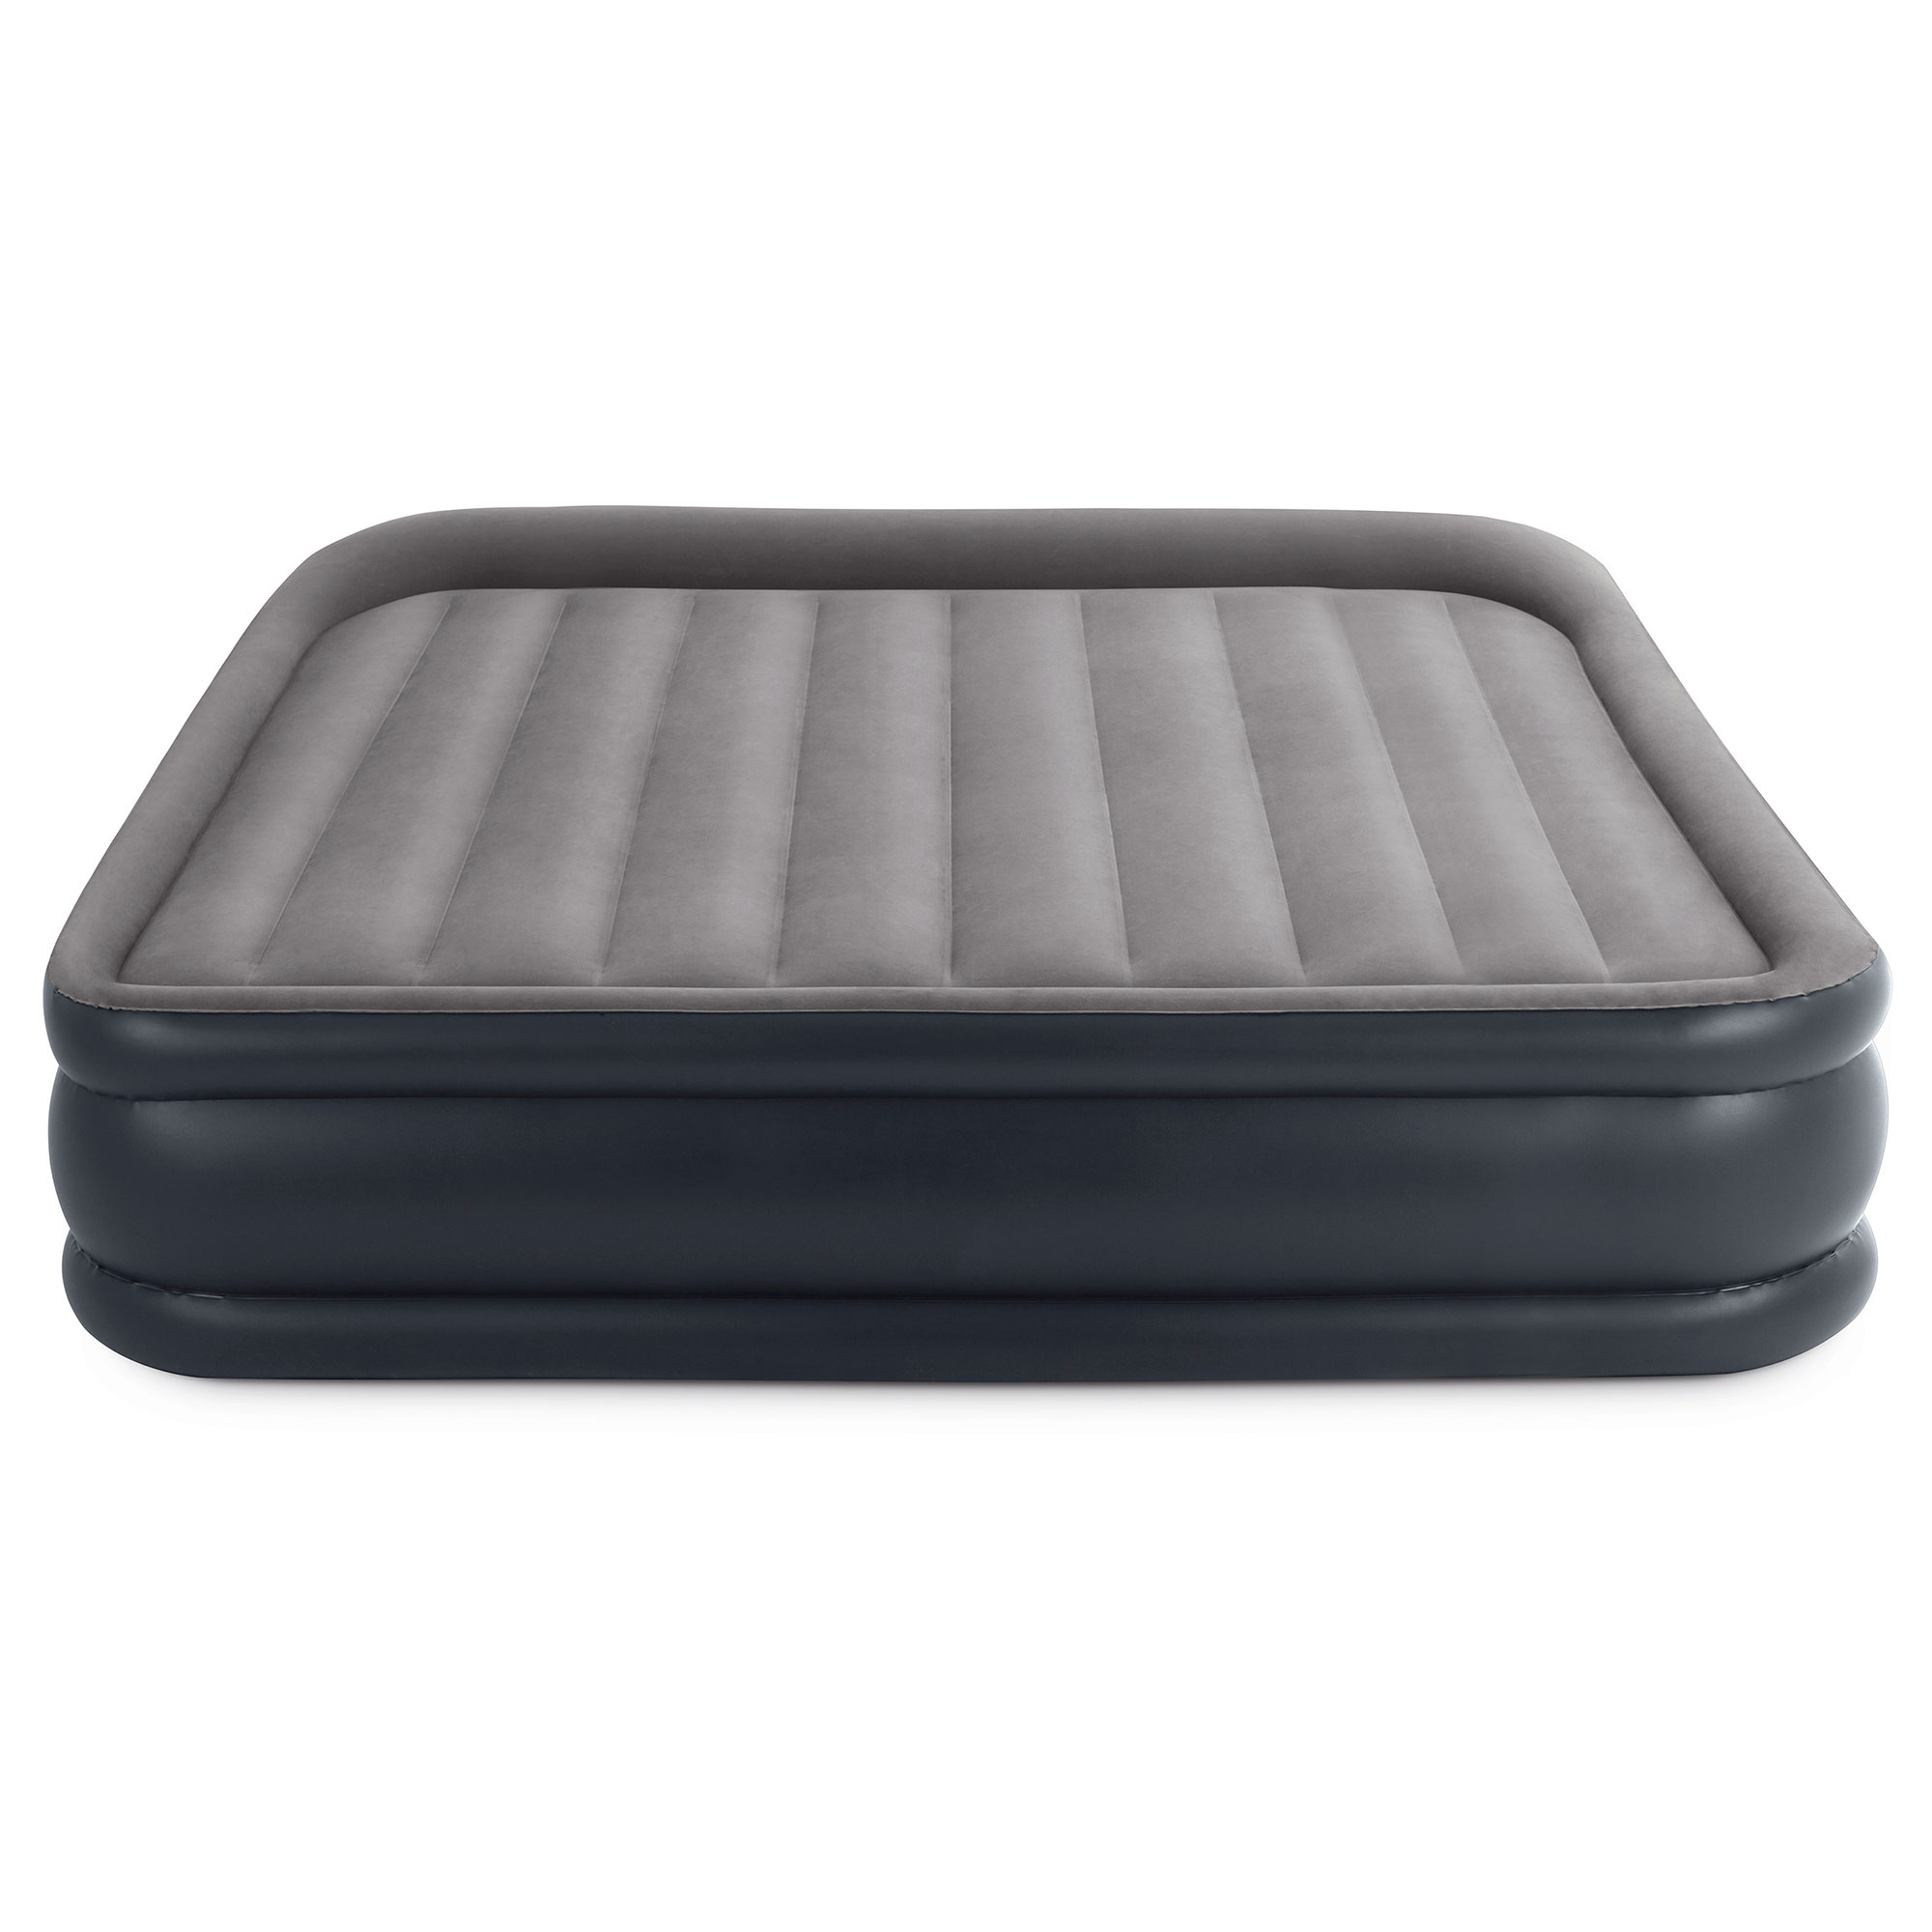 Intex King Inflatable Air Mattress ONLY $57.99 (Reg $105)